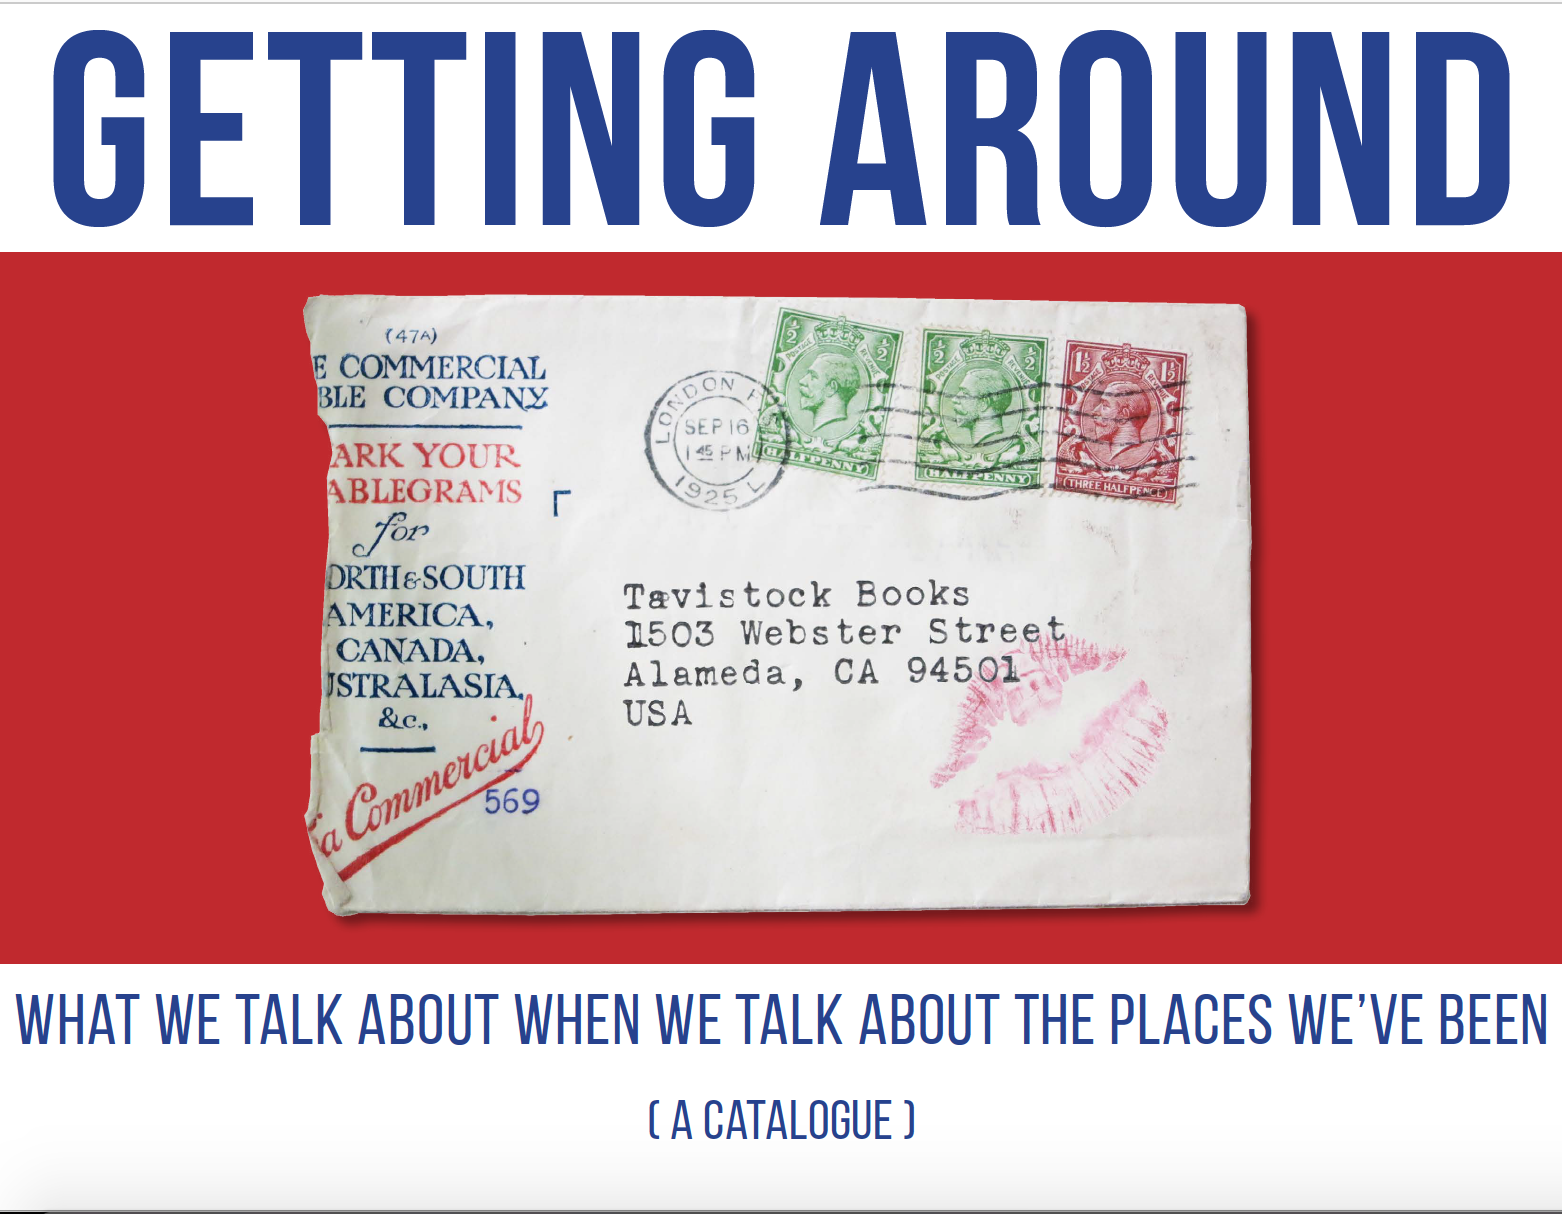 Getting Around: What We Talk about When We Talk about the Places We've Been